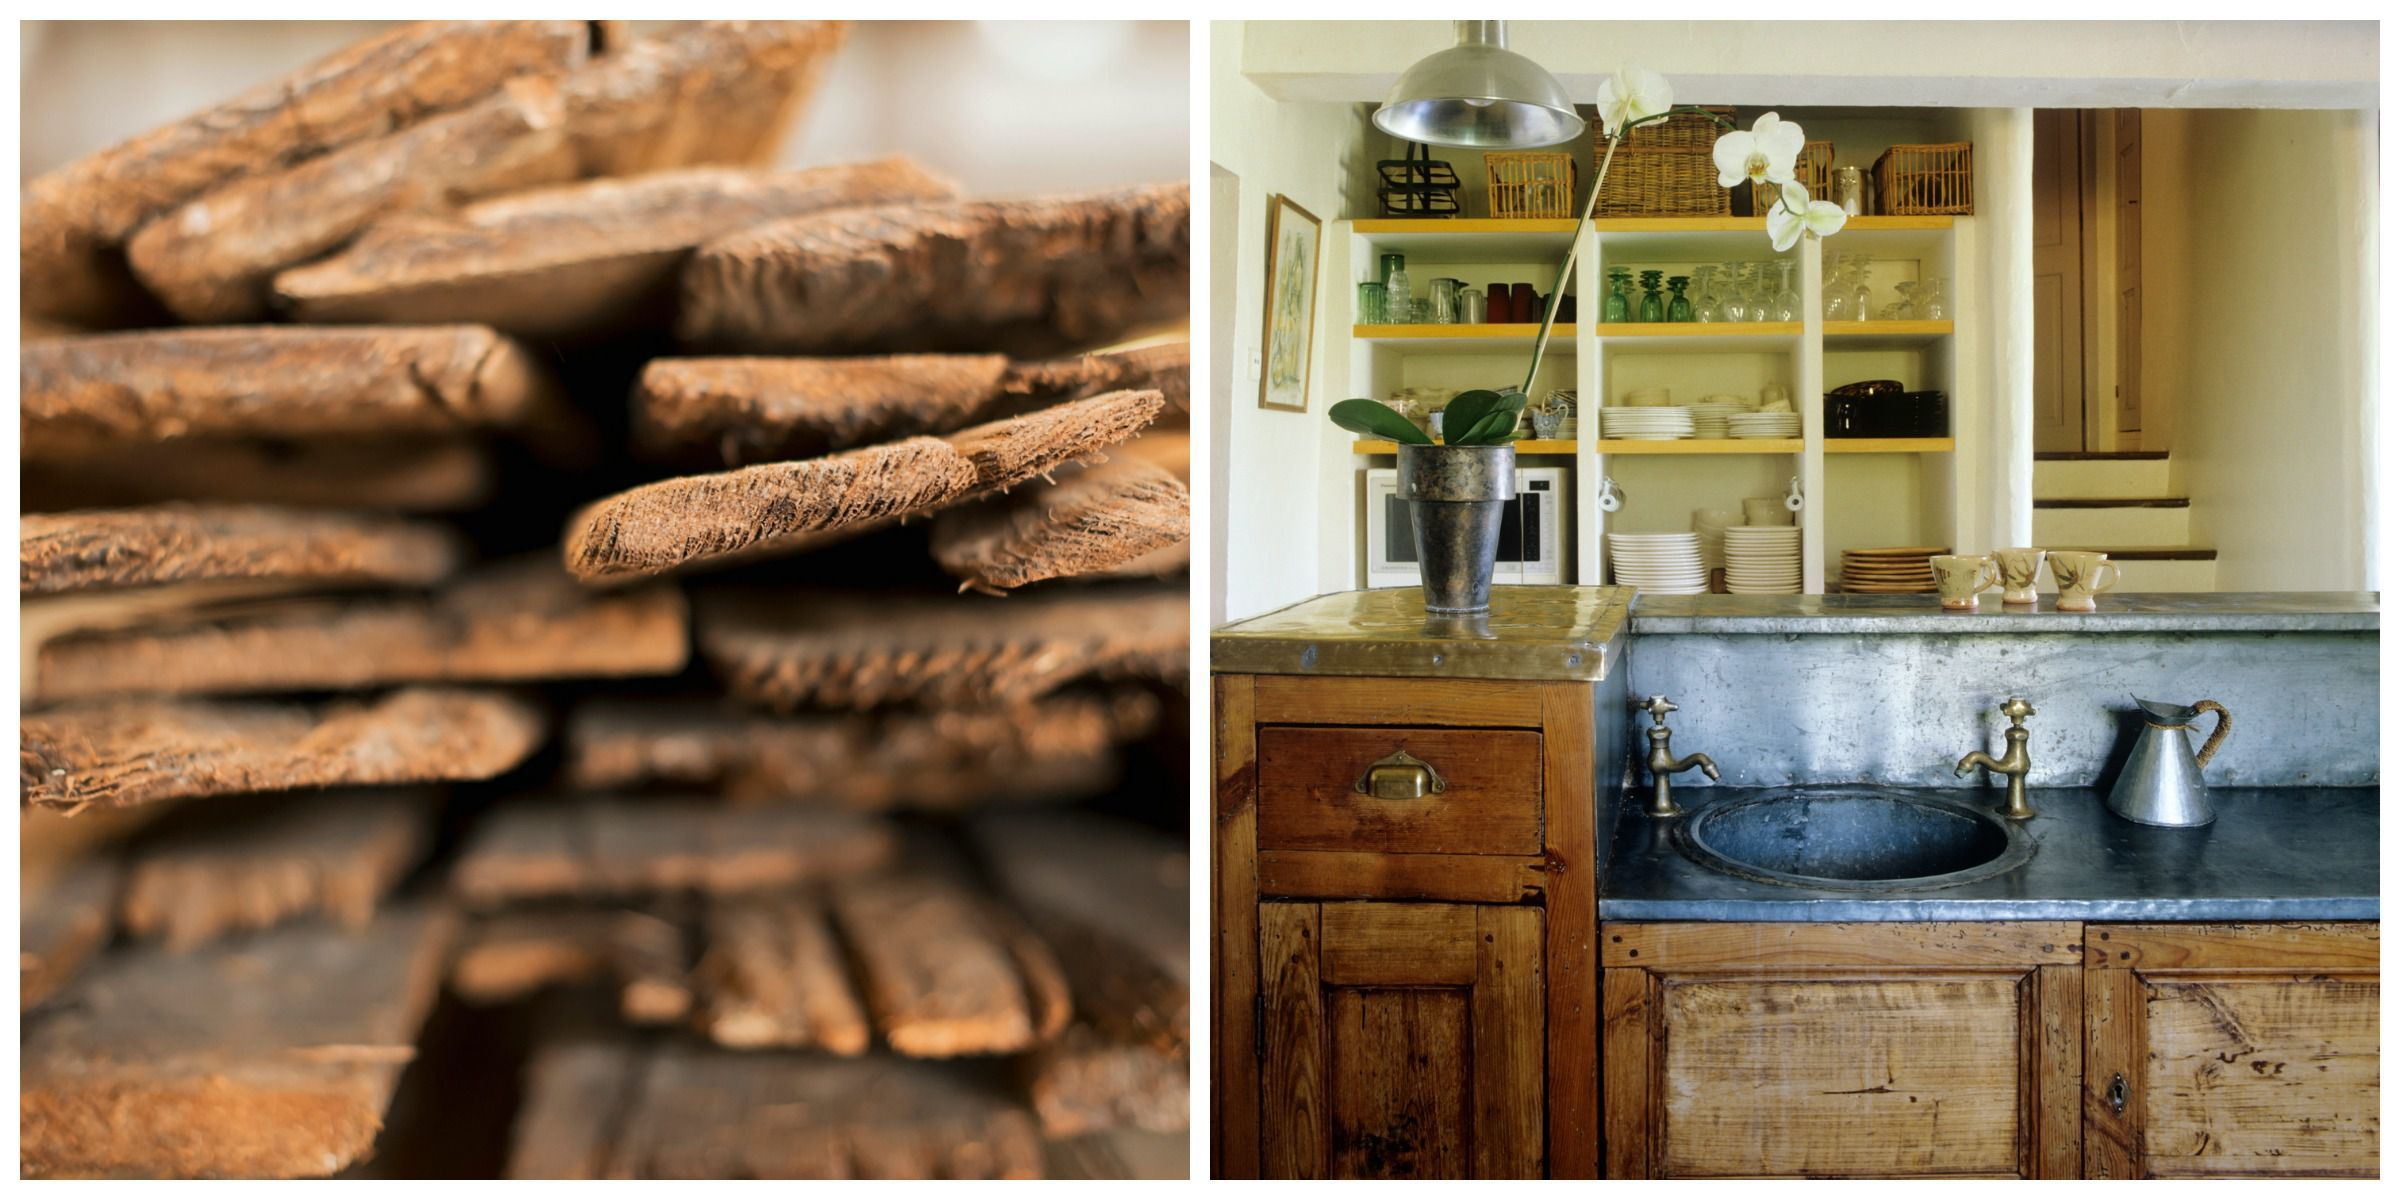 The 6 Best Places to Find and Buy Reclaimed Wood, According to Experts